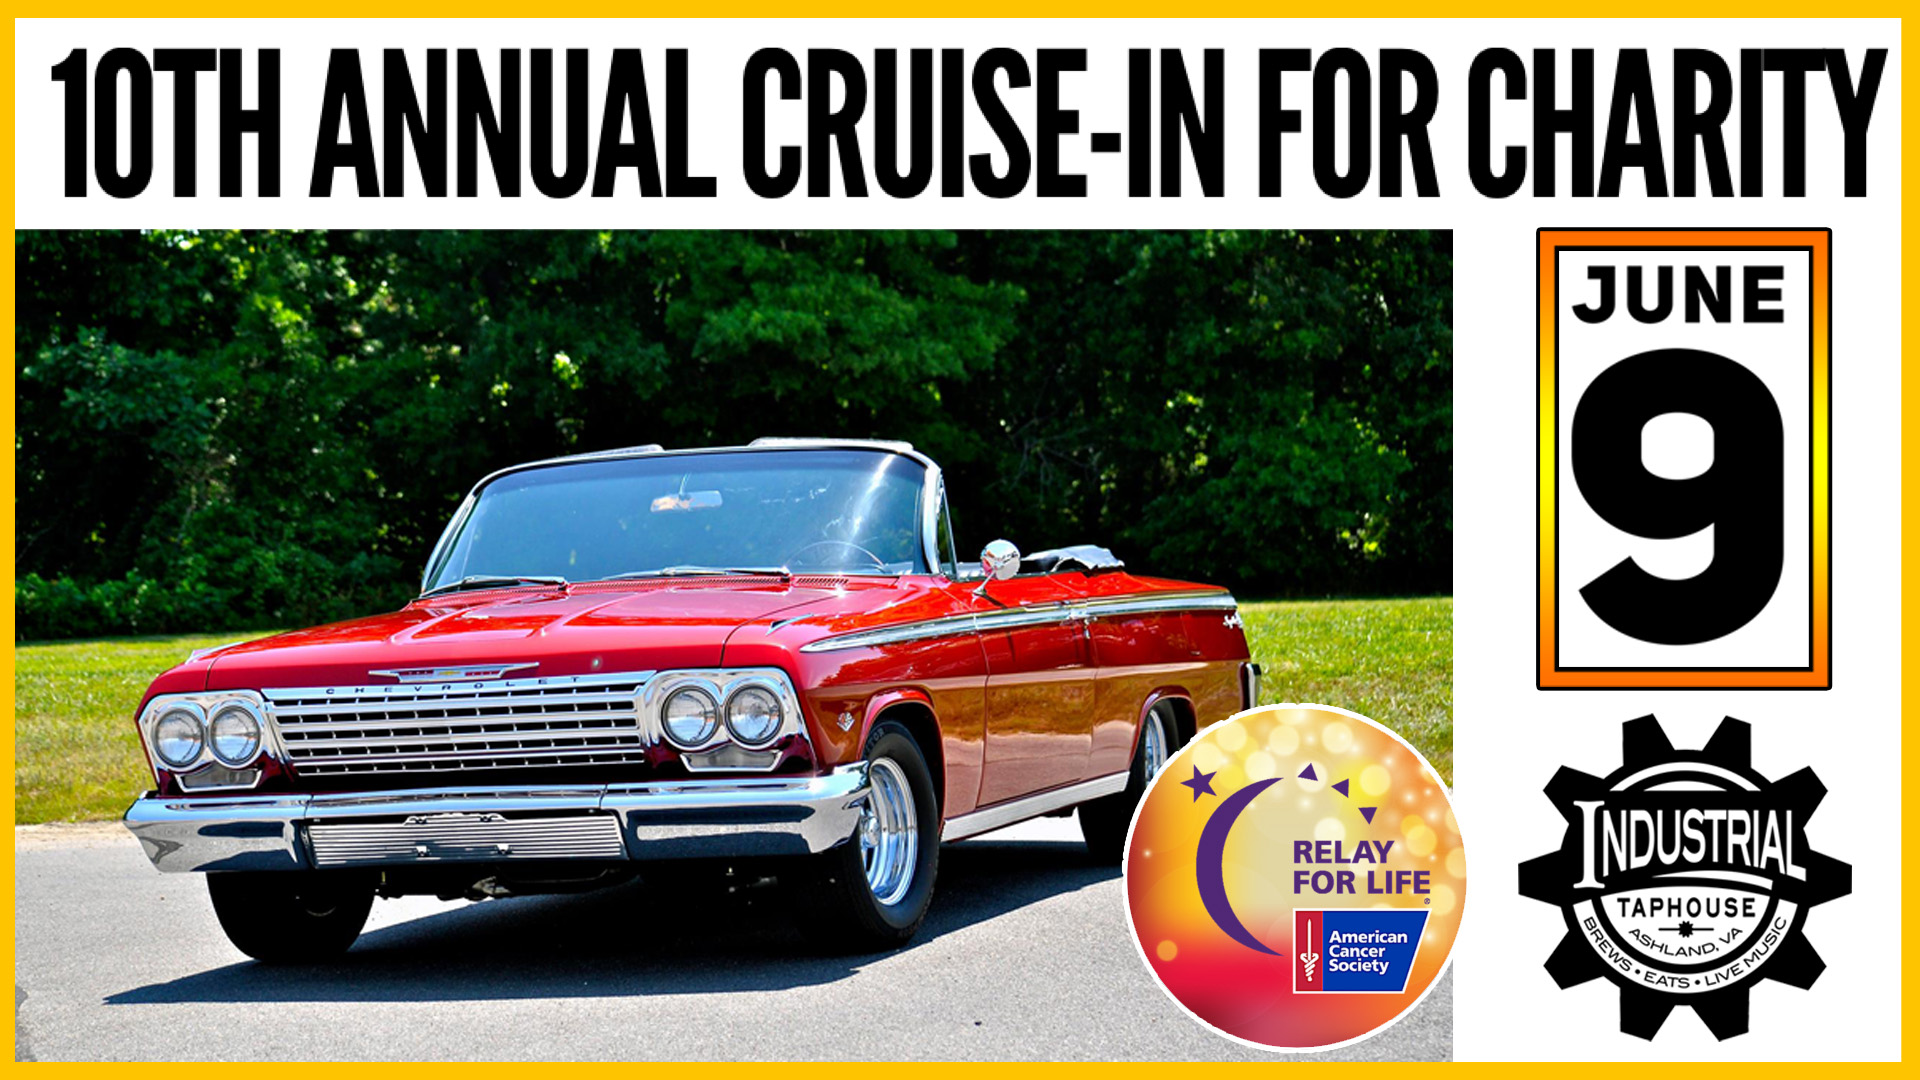 cruise-in, charity, fundraiser, American cancer society, cancer, brunch, dinner, lunch specials, dinner specials, mimosas, momosas, live music, industrial taphouse, Thursday night, best bar, best burger, craft beer, best new restaurant, ashland, Virginia, cotu, rva